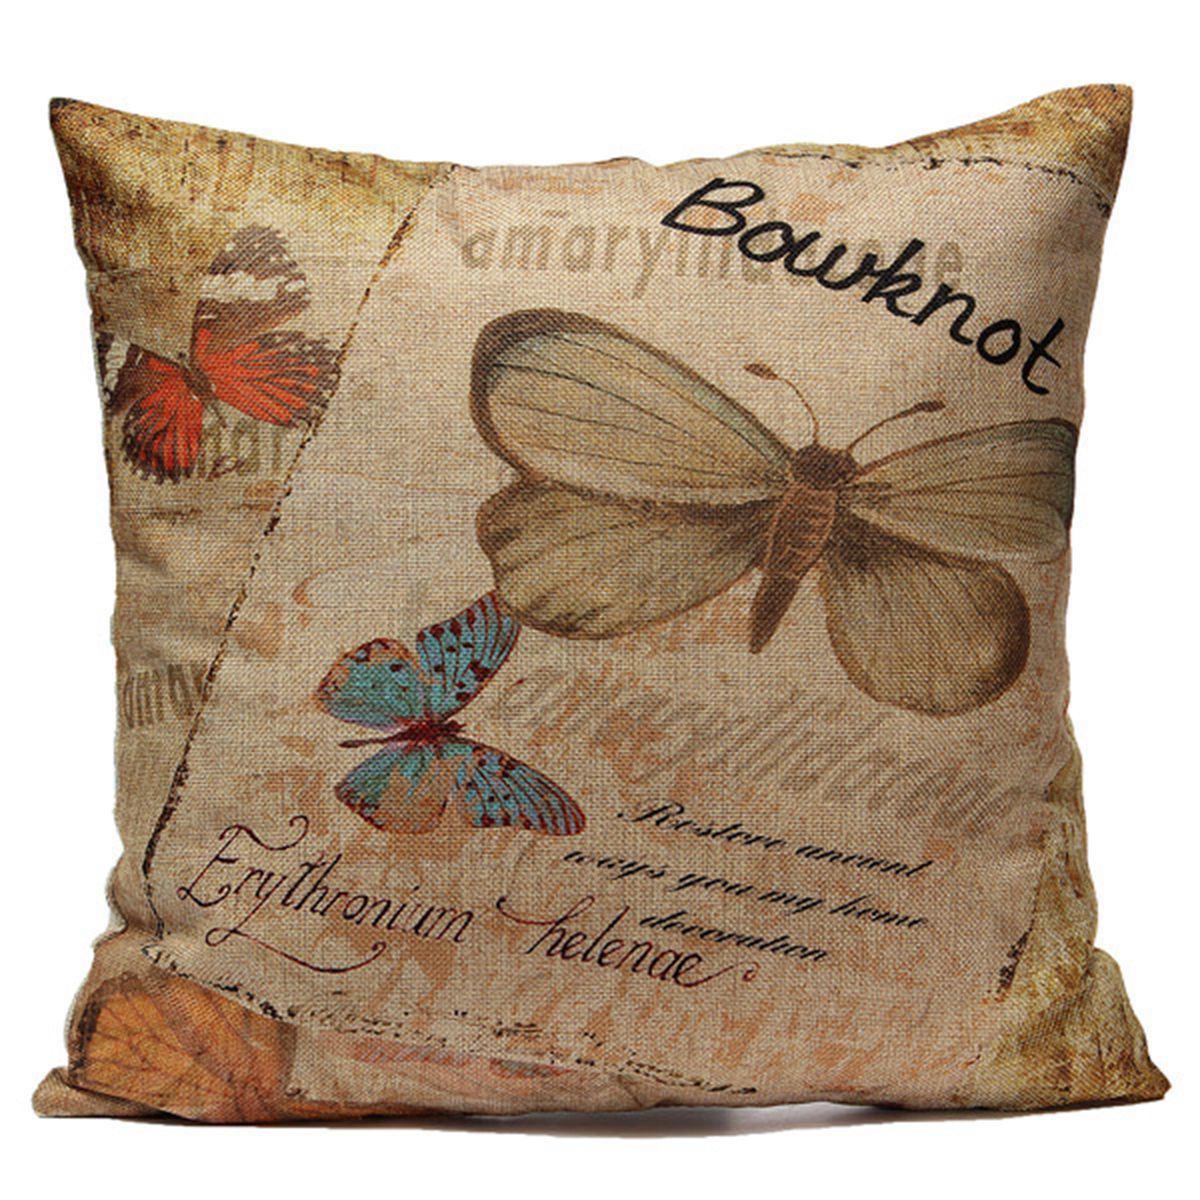 Butterfly Flower Classic Cotton Linen Cushion Cover Throw Pillow Case Home Decor eBay